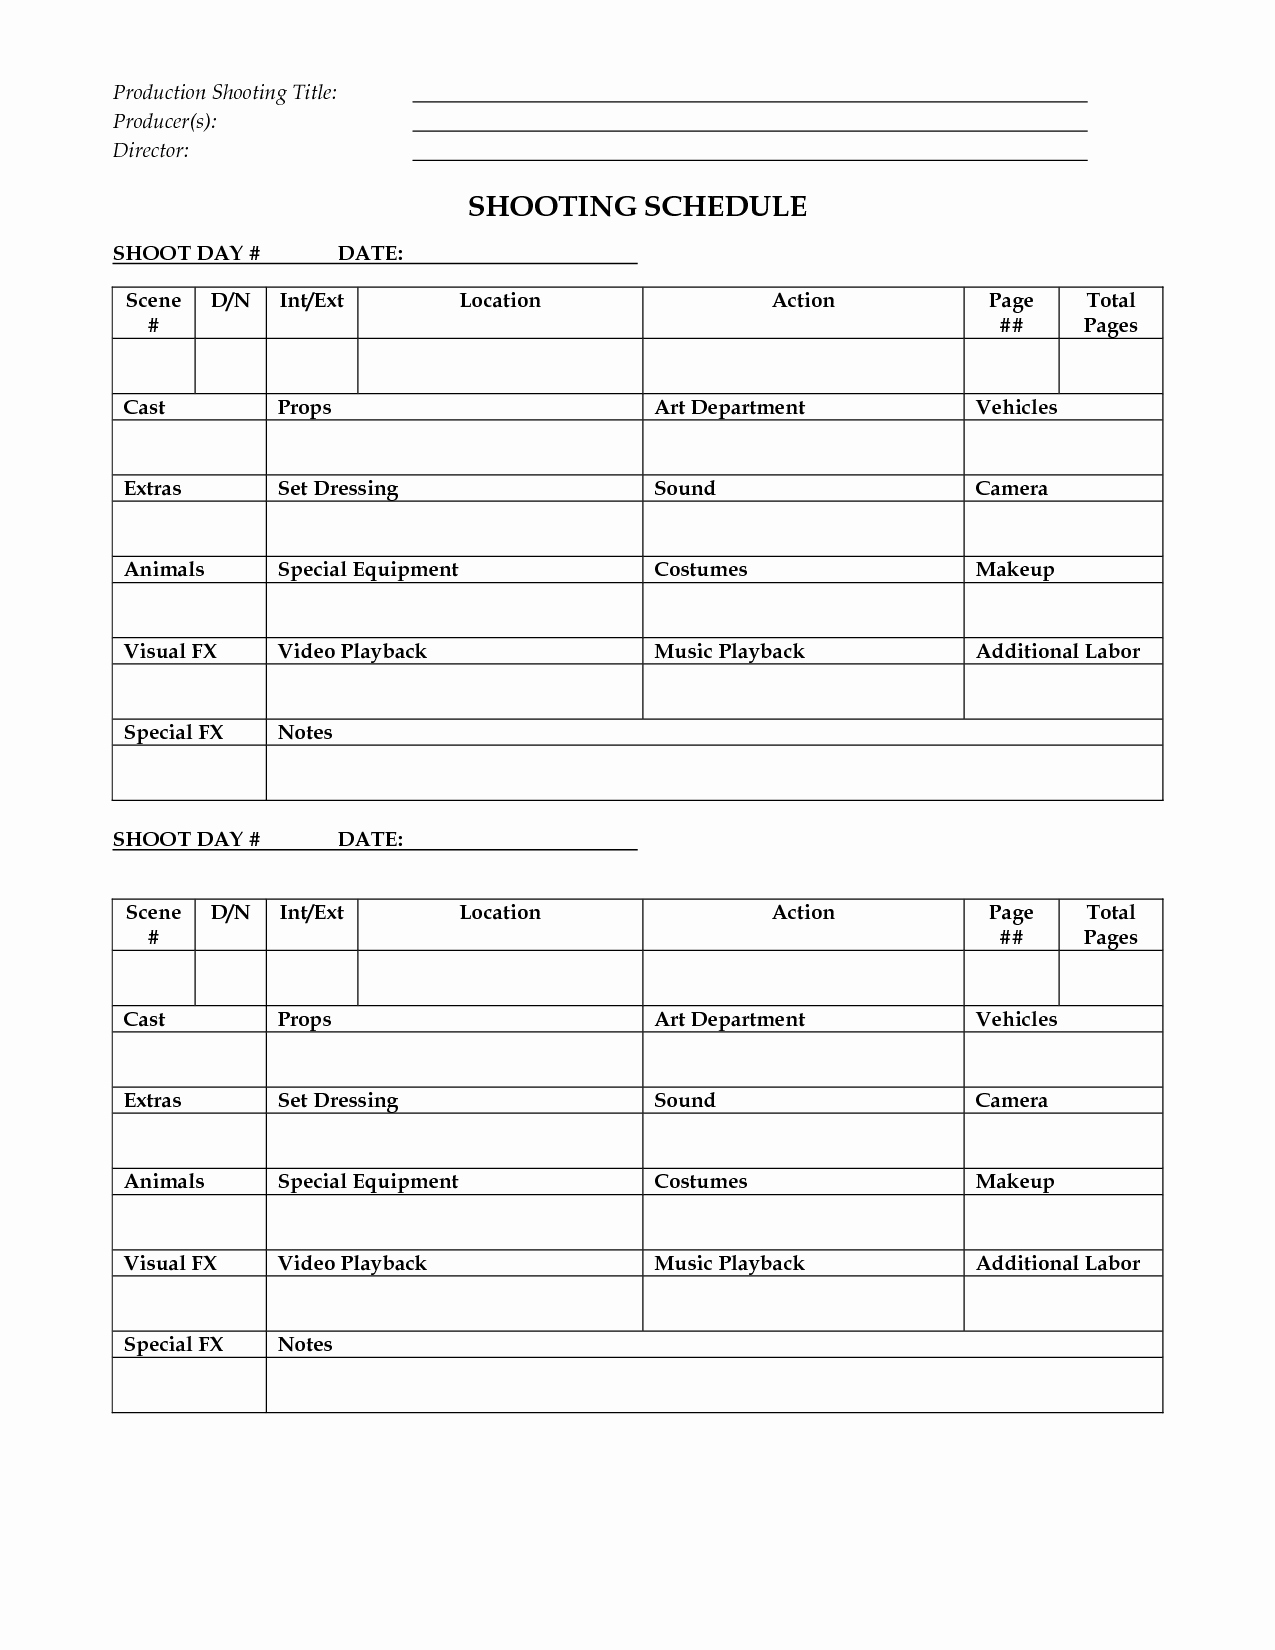 Film Shooting Schedule Template Fresh Shooting Schedule Template 72 Hour Fest